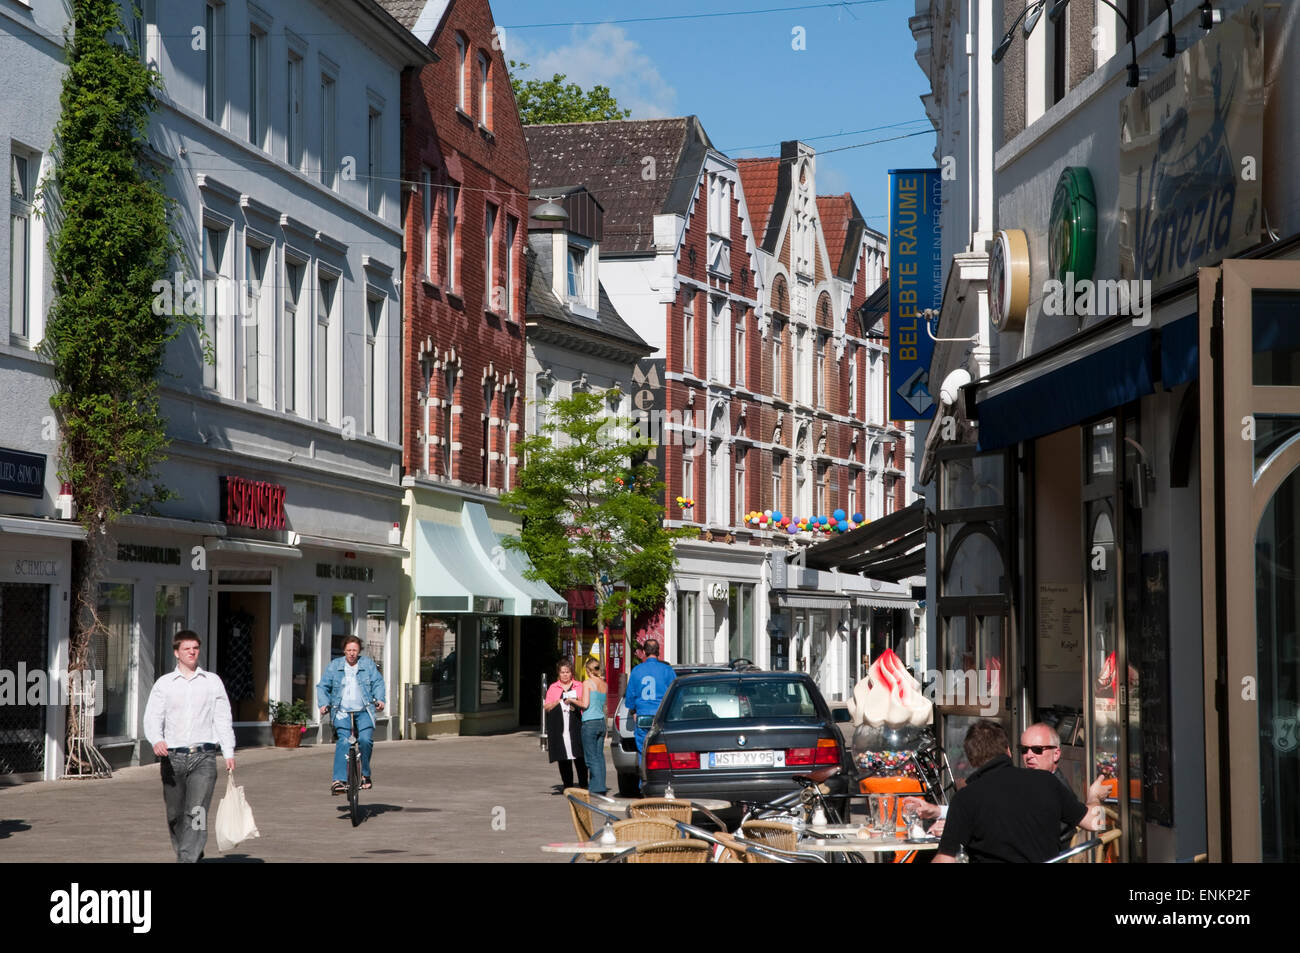 fussgaengerzone altstadt oldenburg niedersachsen deutschland stock photo 82183655 alamy. Black Bedroom Furniture Sets. Home Design Ideas